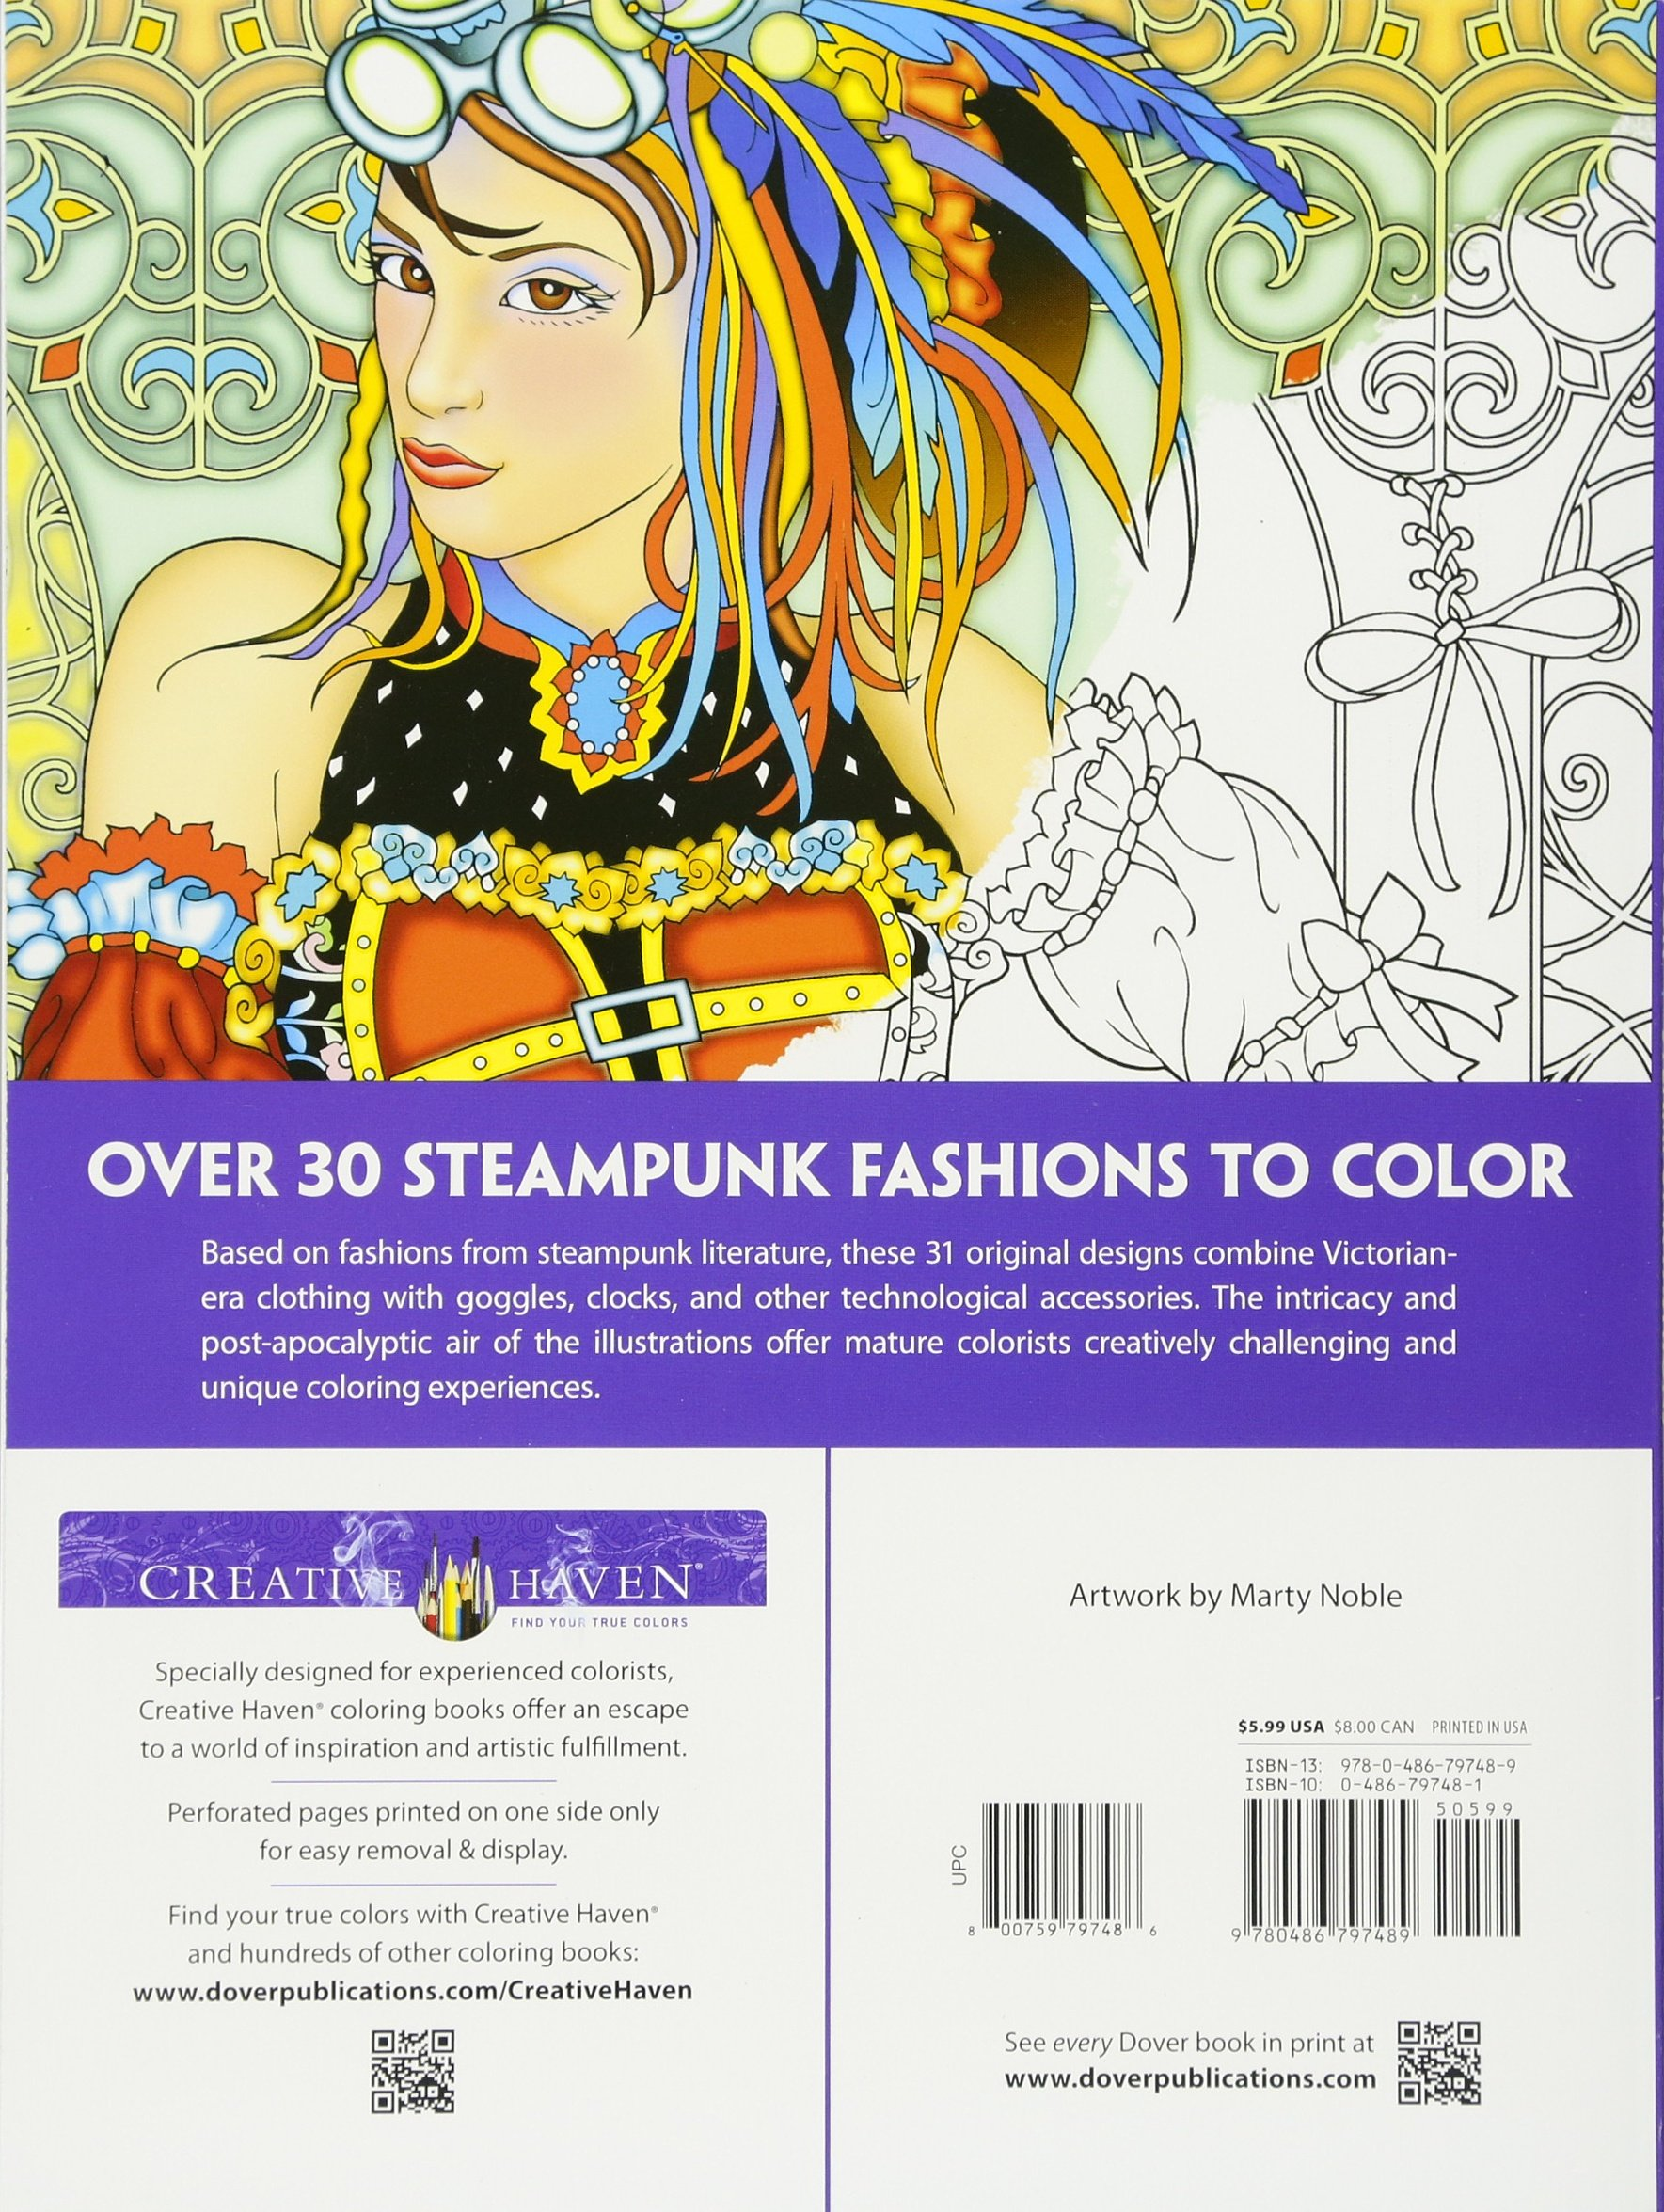 Creative Haven Steampunk Fashions Coloring Book Amazonca Marty Noble Books